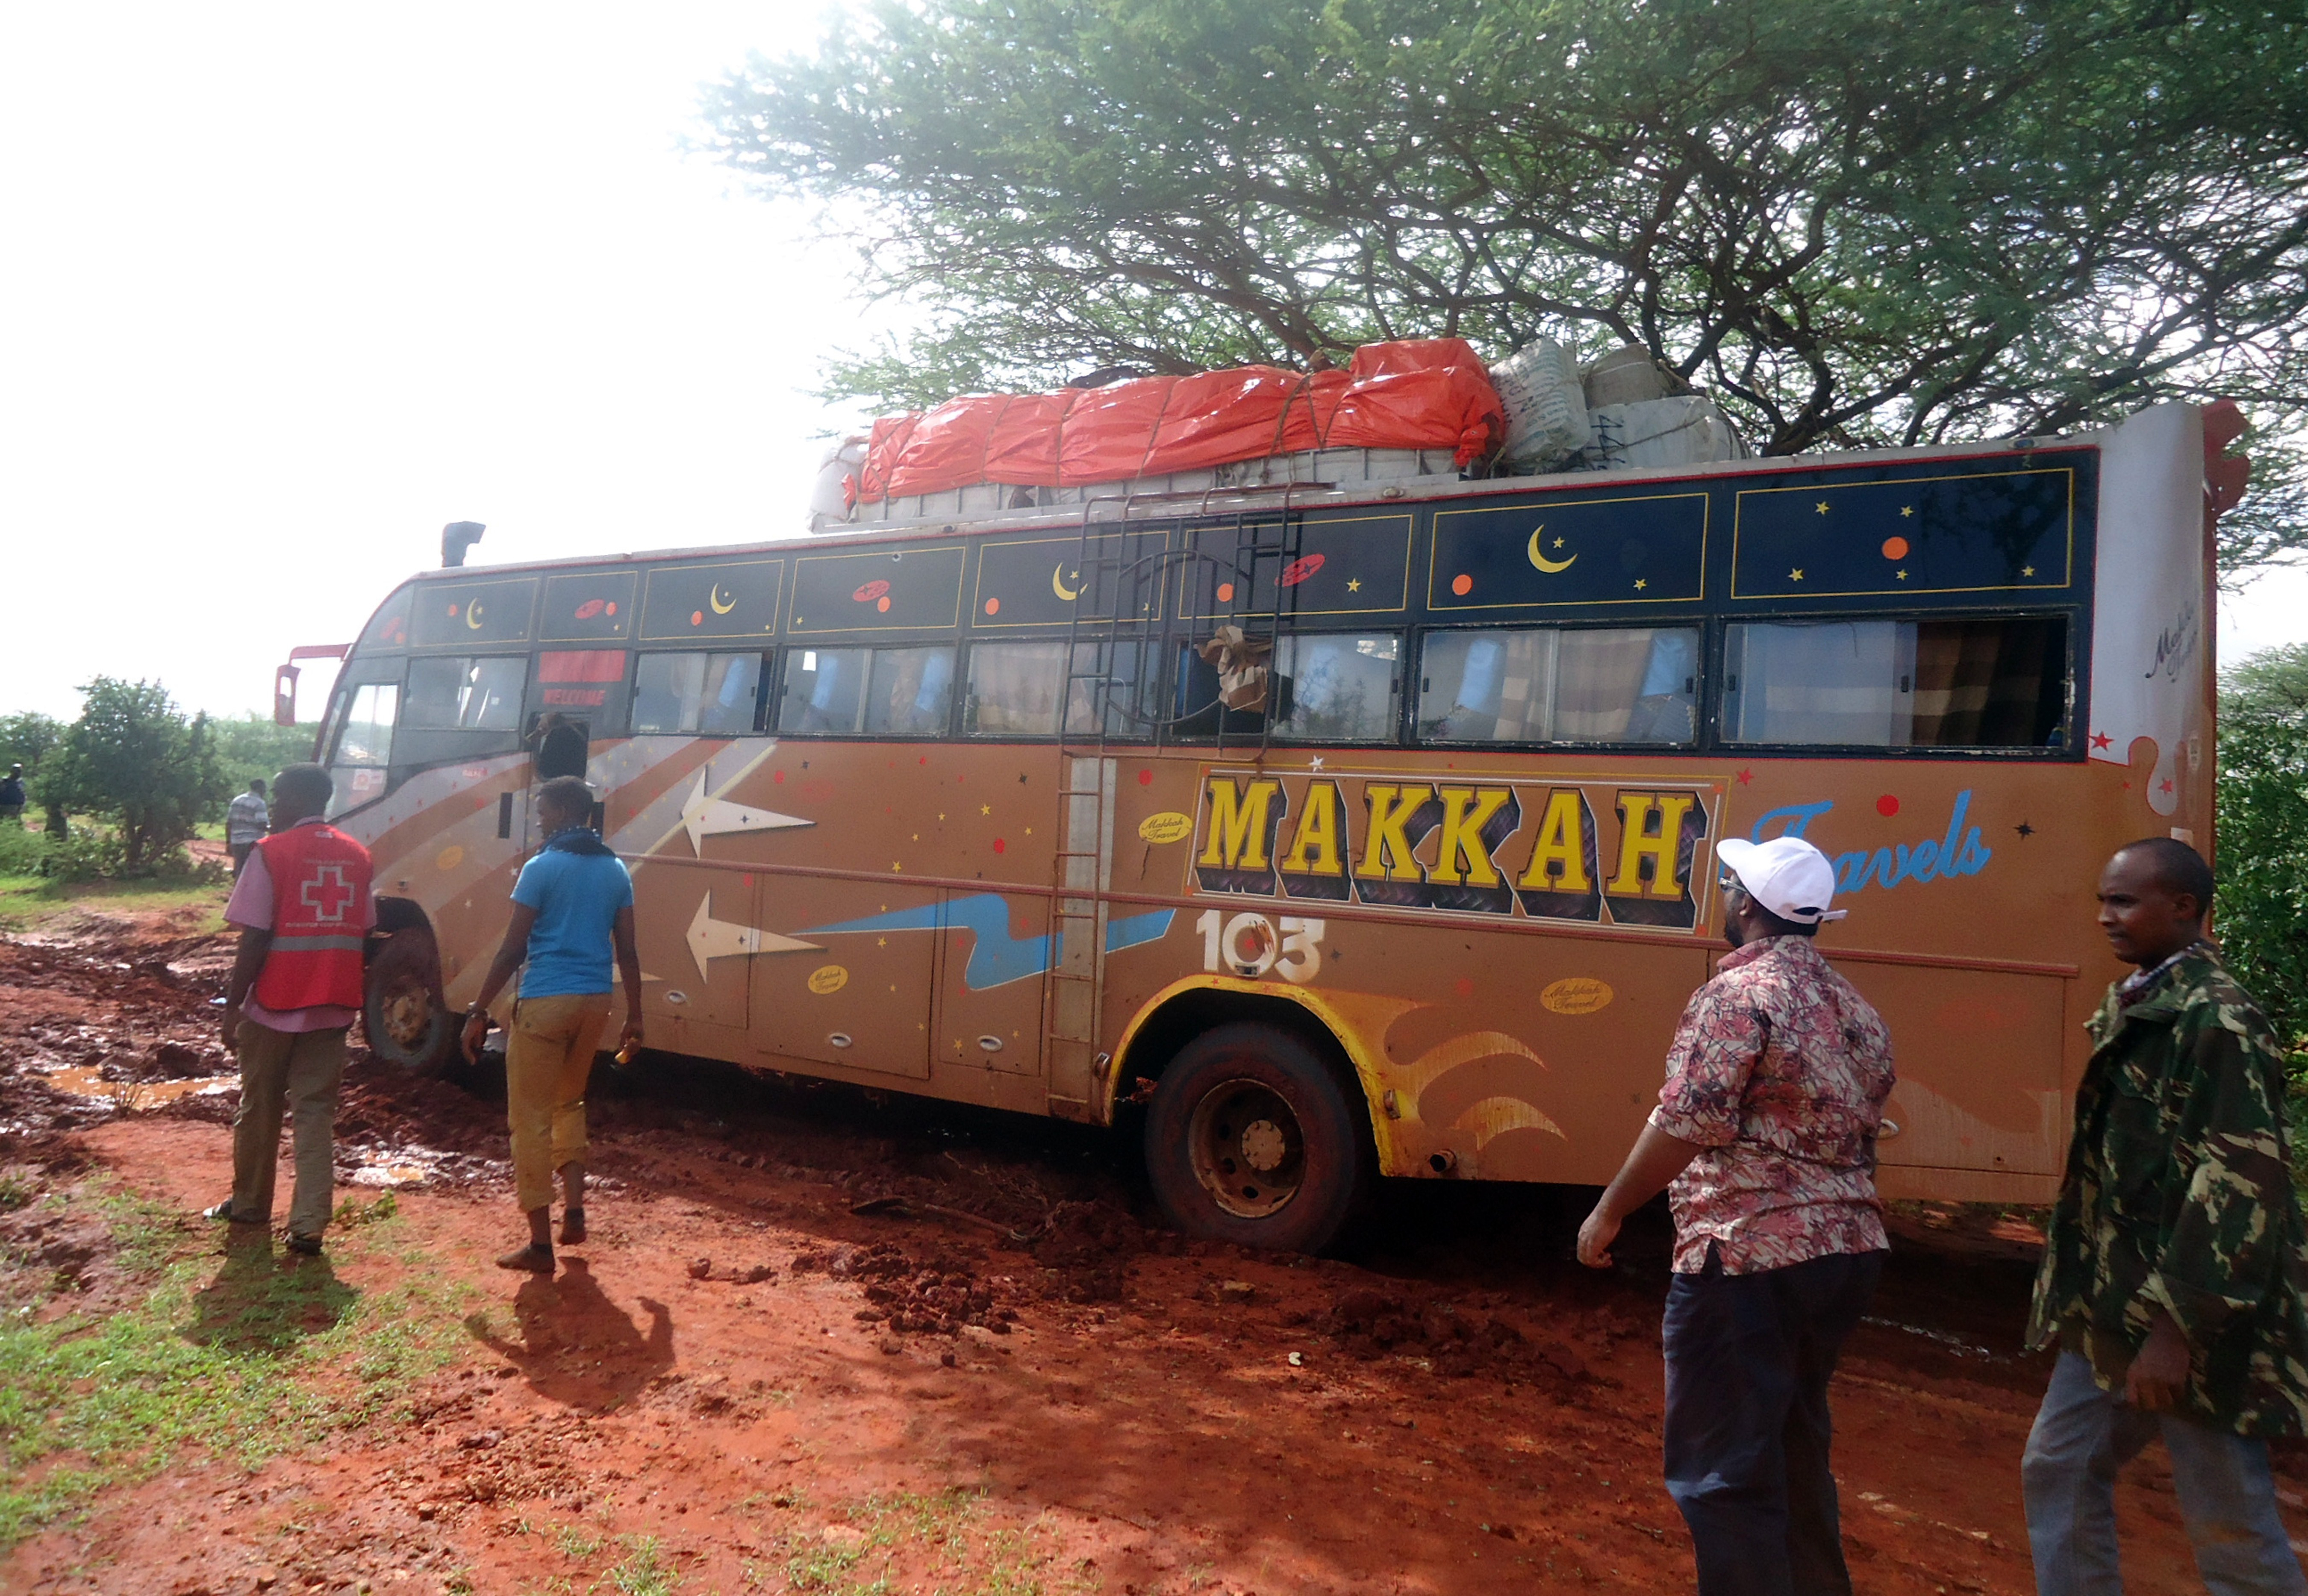 A picture taken on November 22, 2014 shows the bus on which was carried out a dawn attack and 28 non-Muslim passengers were singled out from 60 and executed. (Getty)